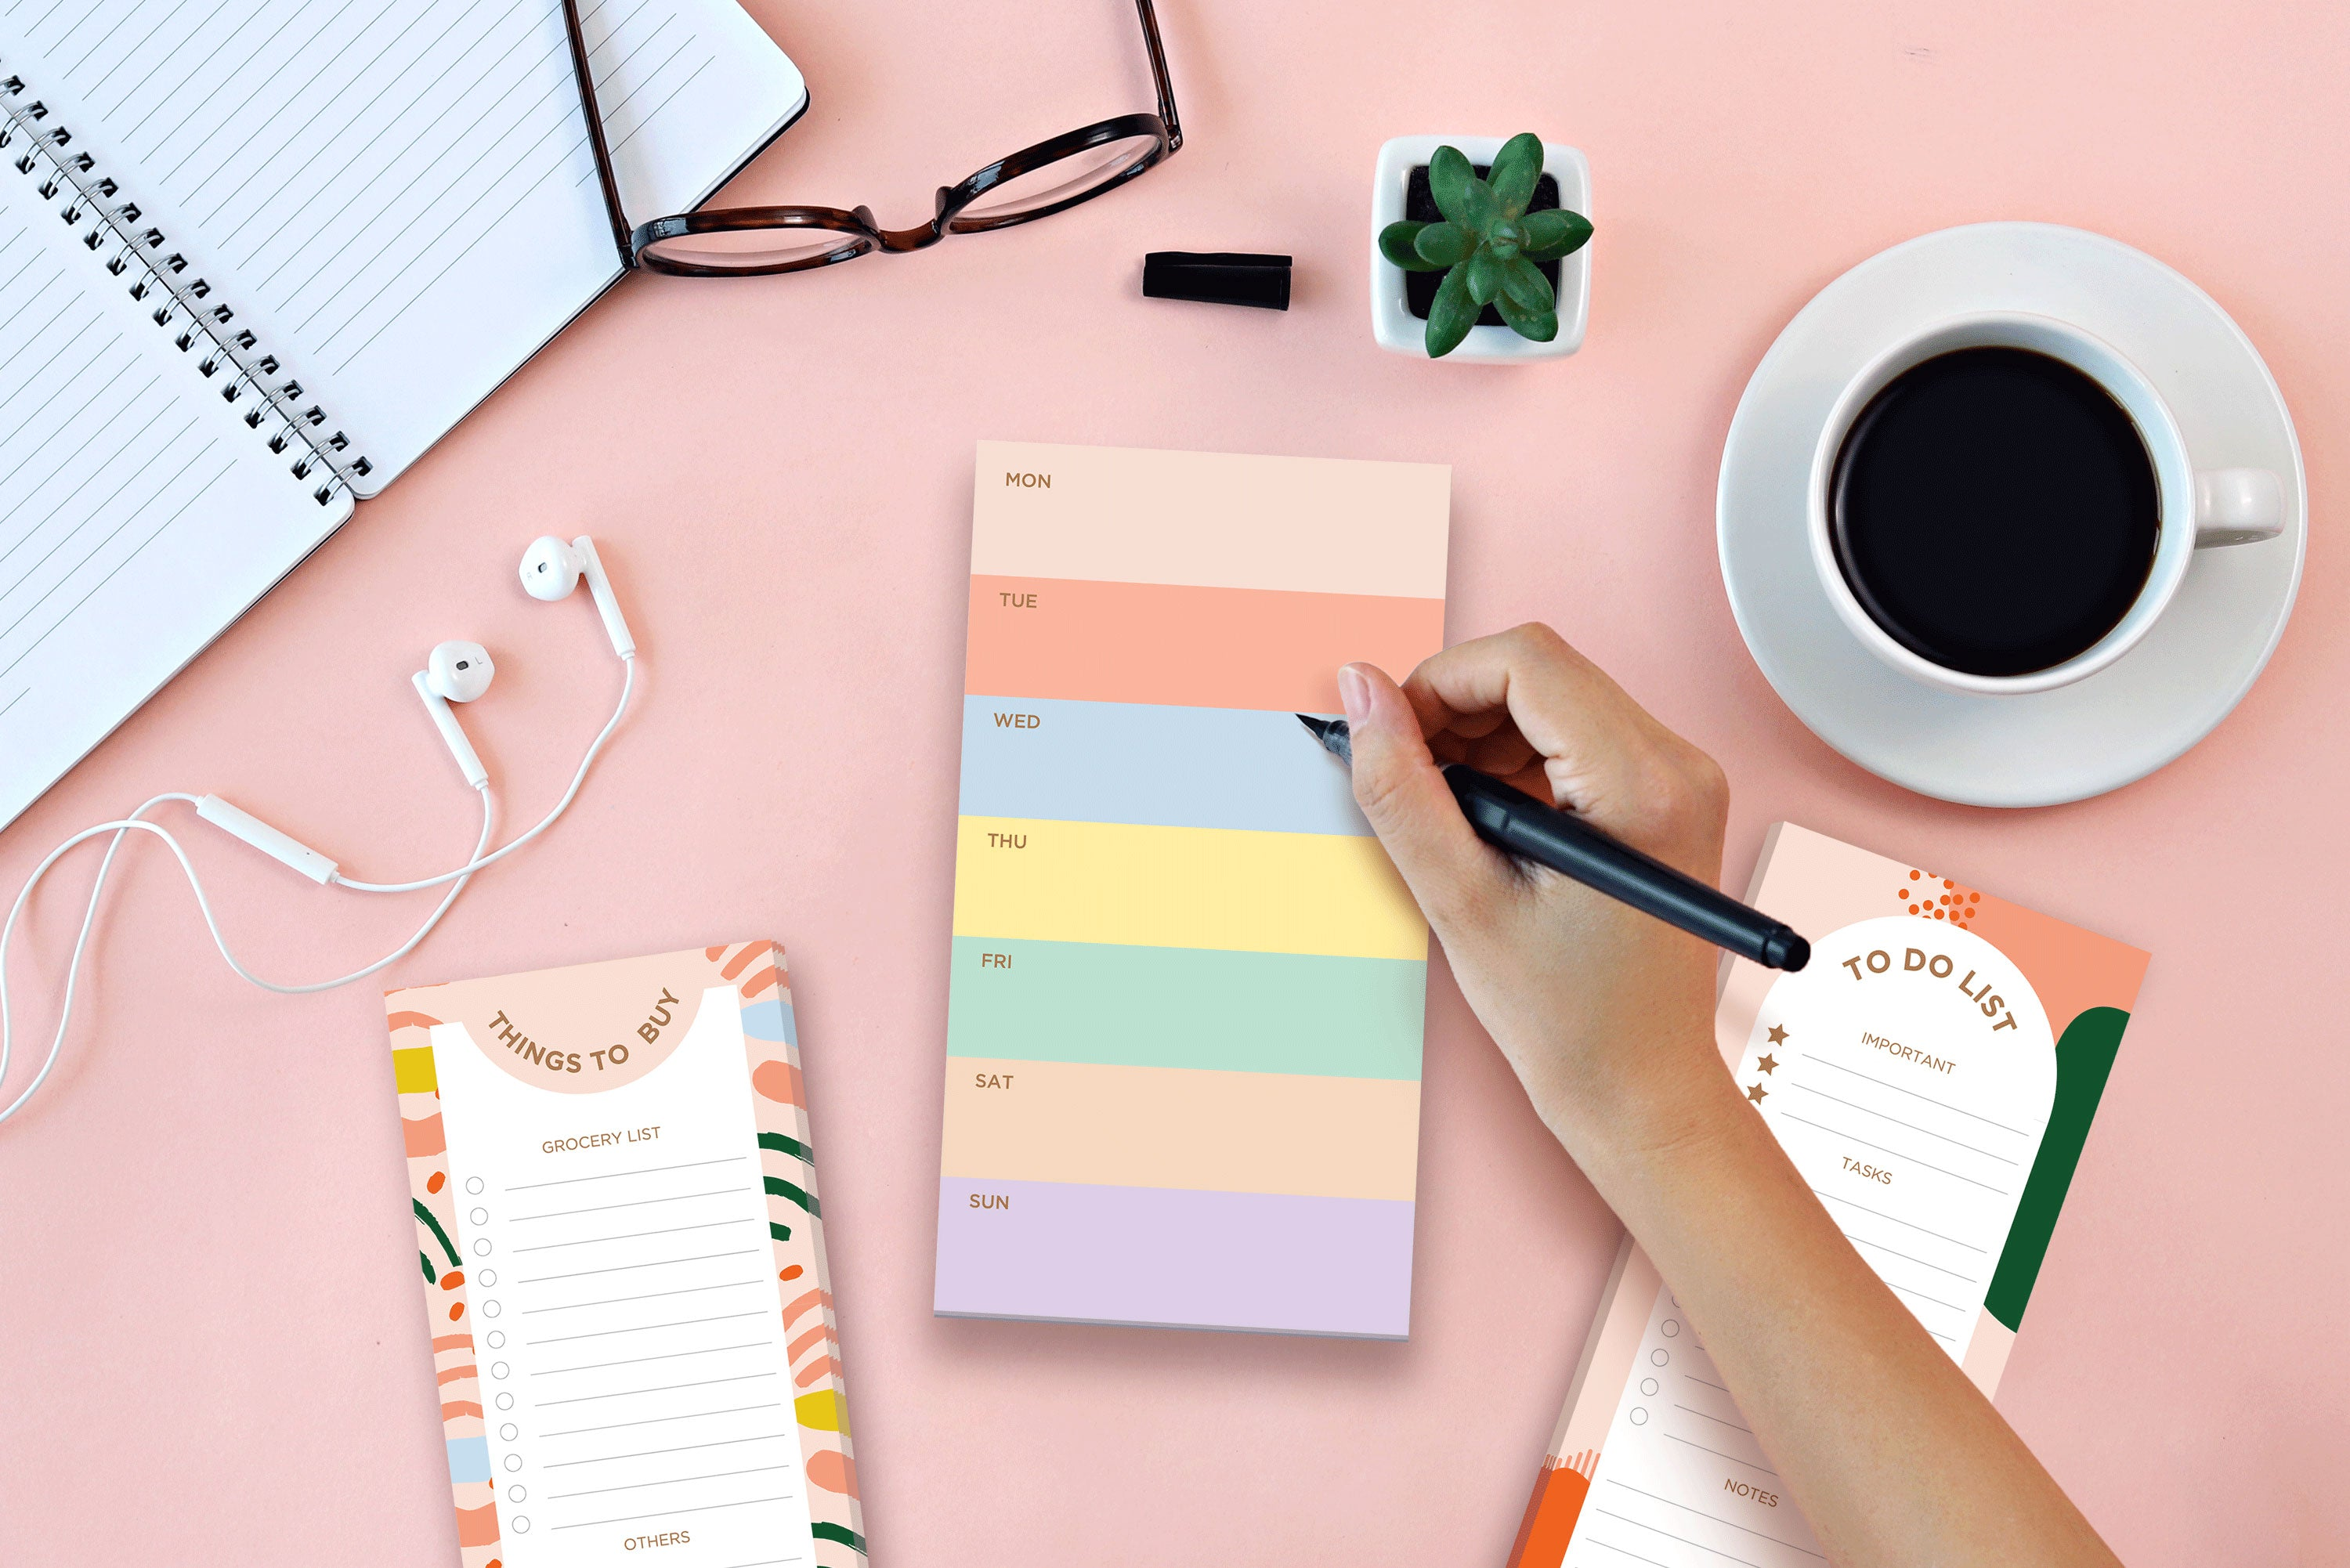 To-do List Mistakes and How to Get Your Life Organized